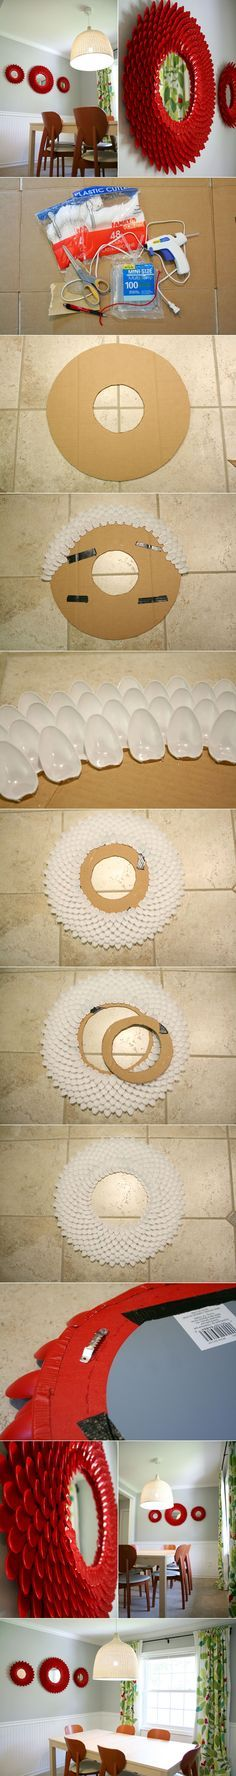 Diy Decorative Chrysanthemum Mirror With Plastic Spoons 16 Diy Decor Crafts For Your Home Gleamitup Decor Crafts, Home Crafts, Fun Crafts, Diy Home Decor, Diy And Crafts, Arts And Crafts, Art Diy, Diy Wall Art, Spoon Mirror